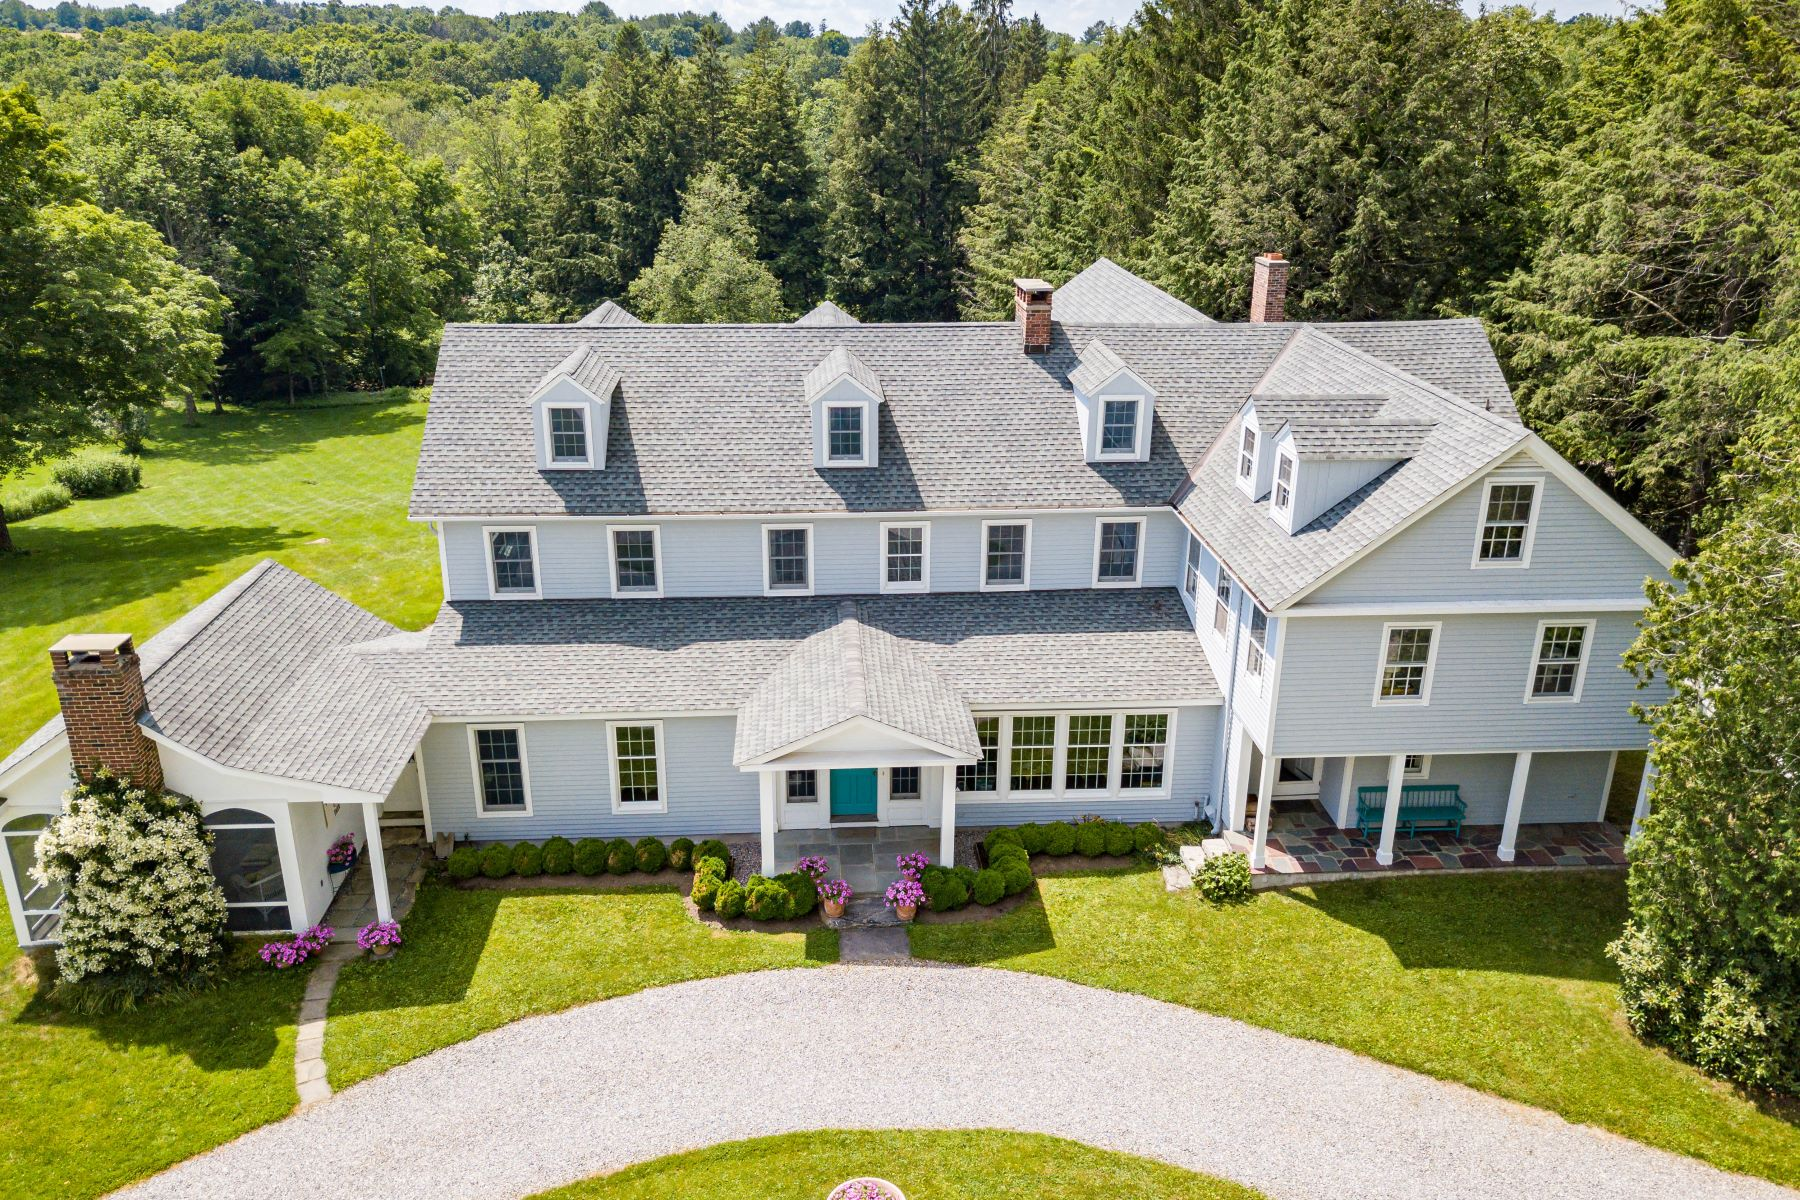 Single Family Homes for Sale at Willowbrook Farm 215 Locust Road Harwinton, Connecticut 06791 United States